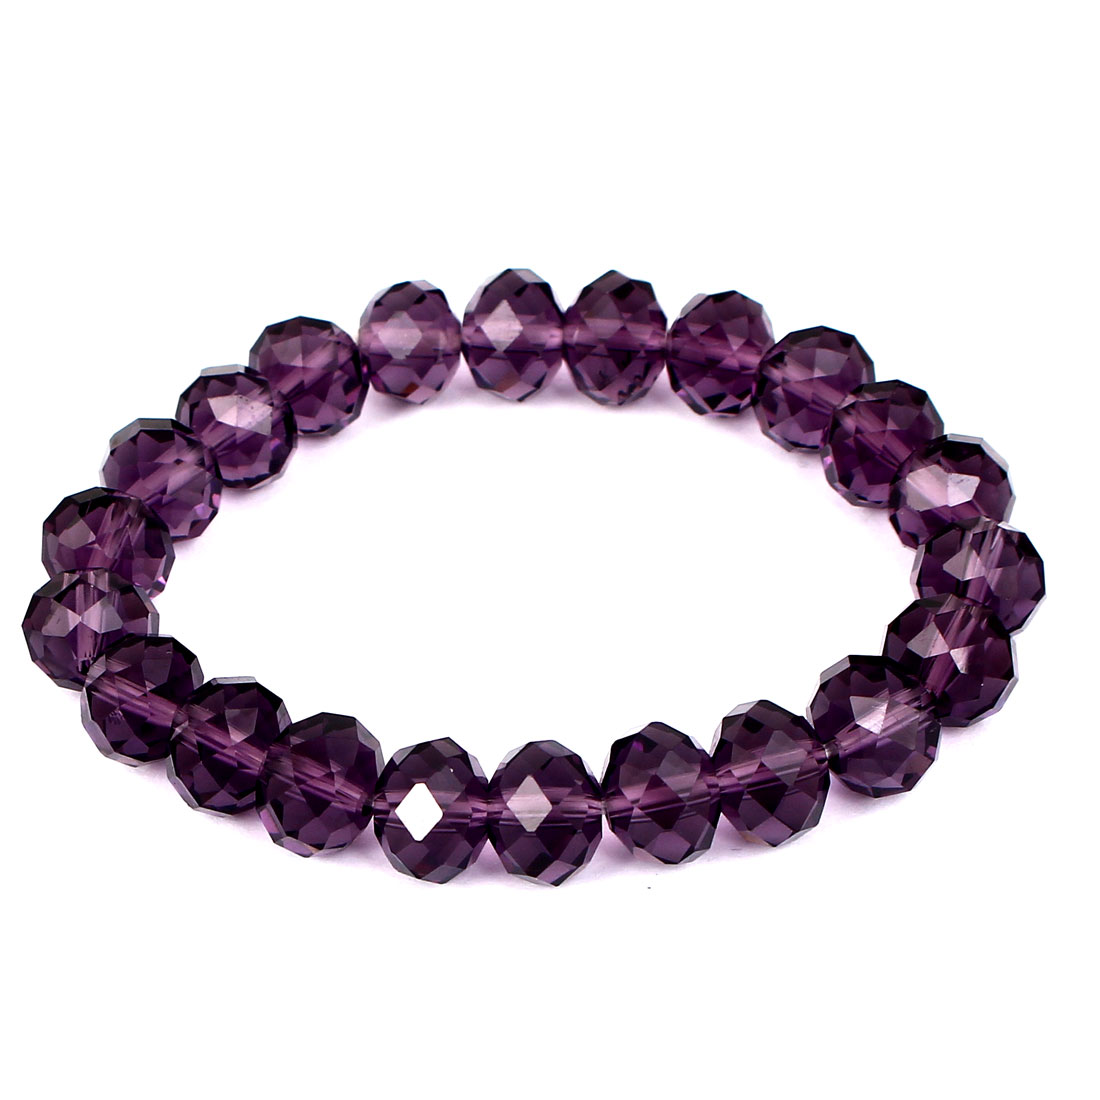 Girl Lady Gift Party Charm Fashion Jewelry Bling Elastic Crystal Bracelet Purple